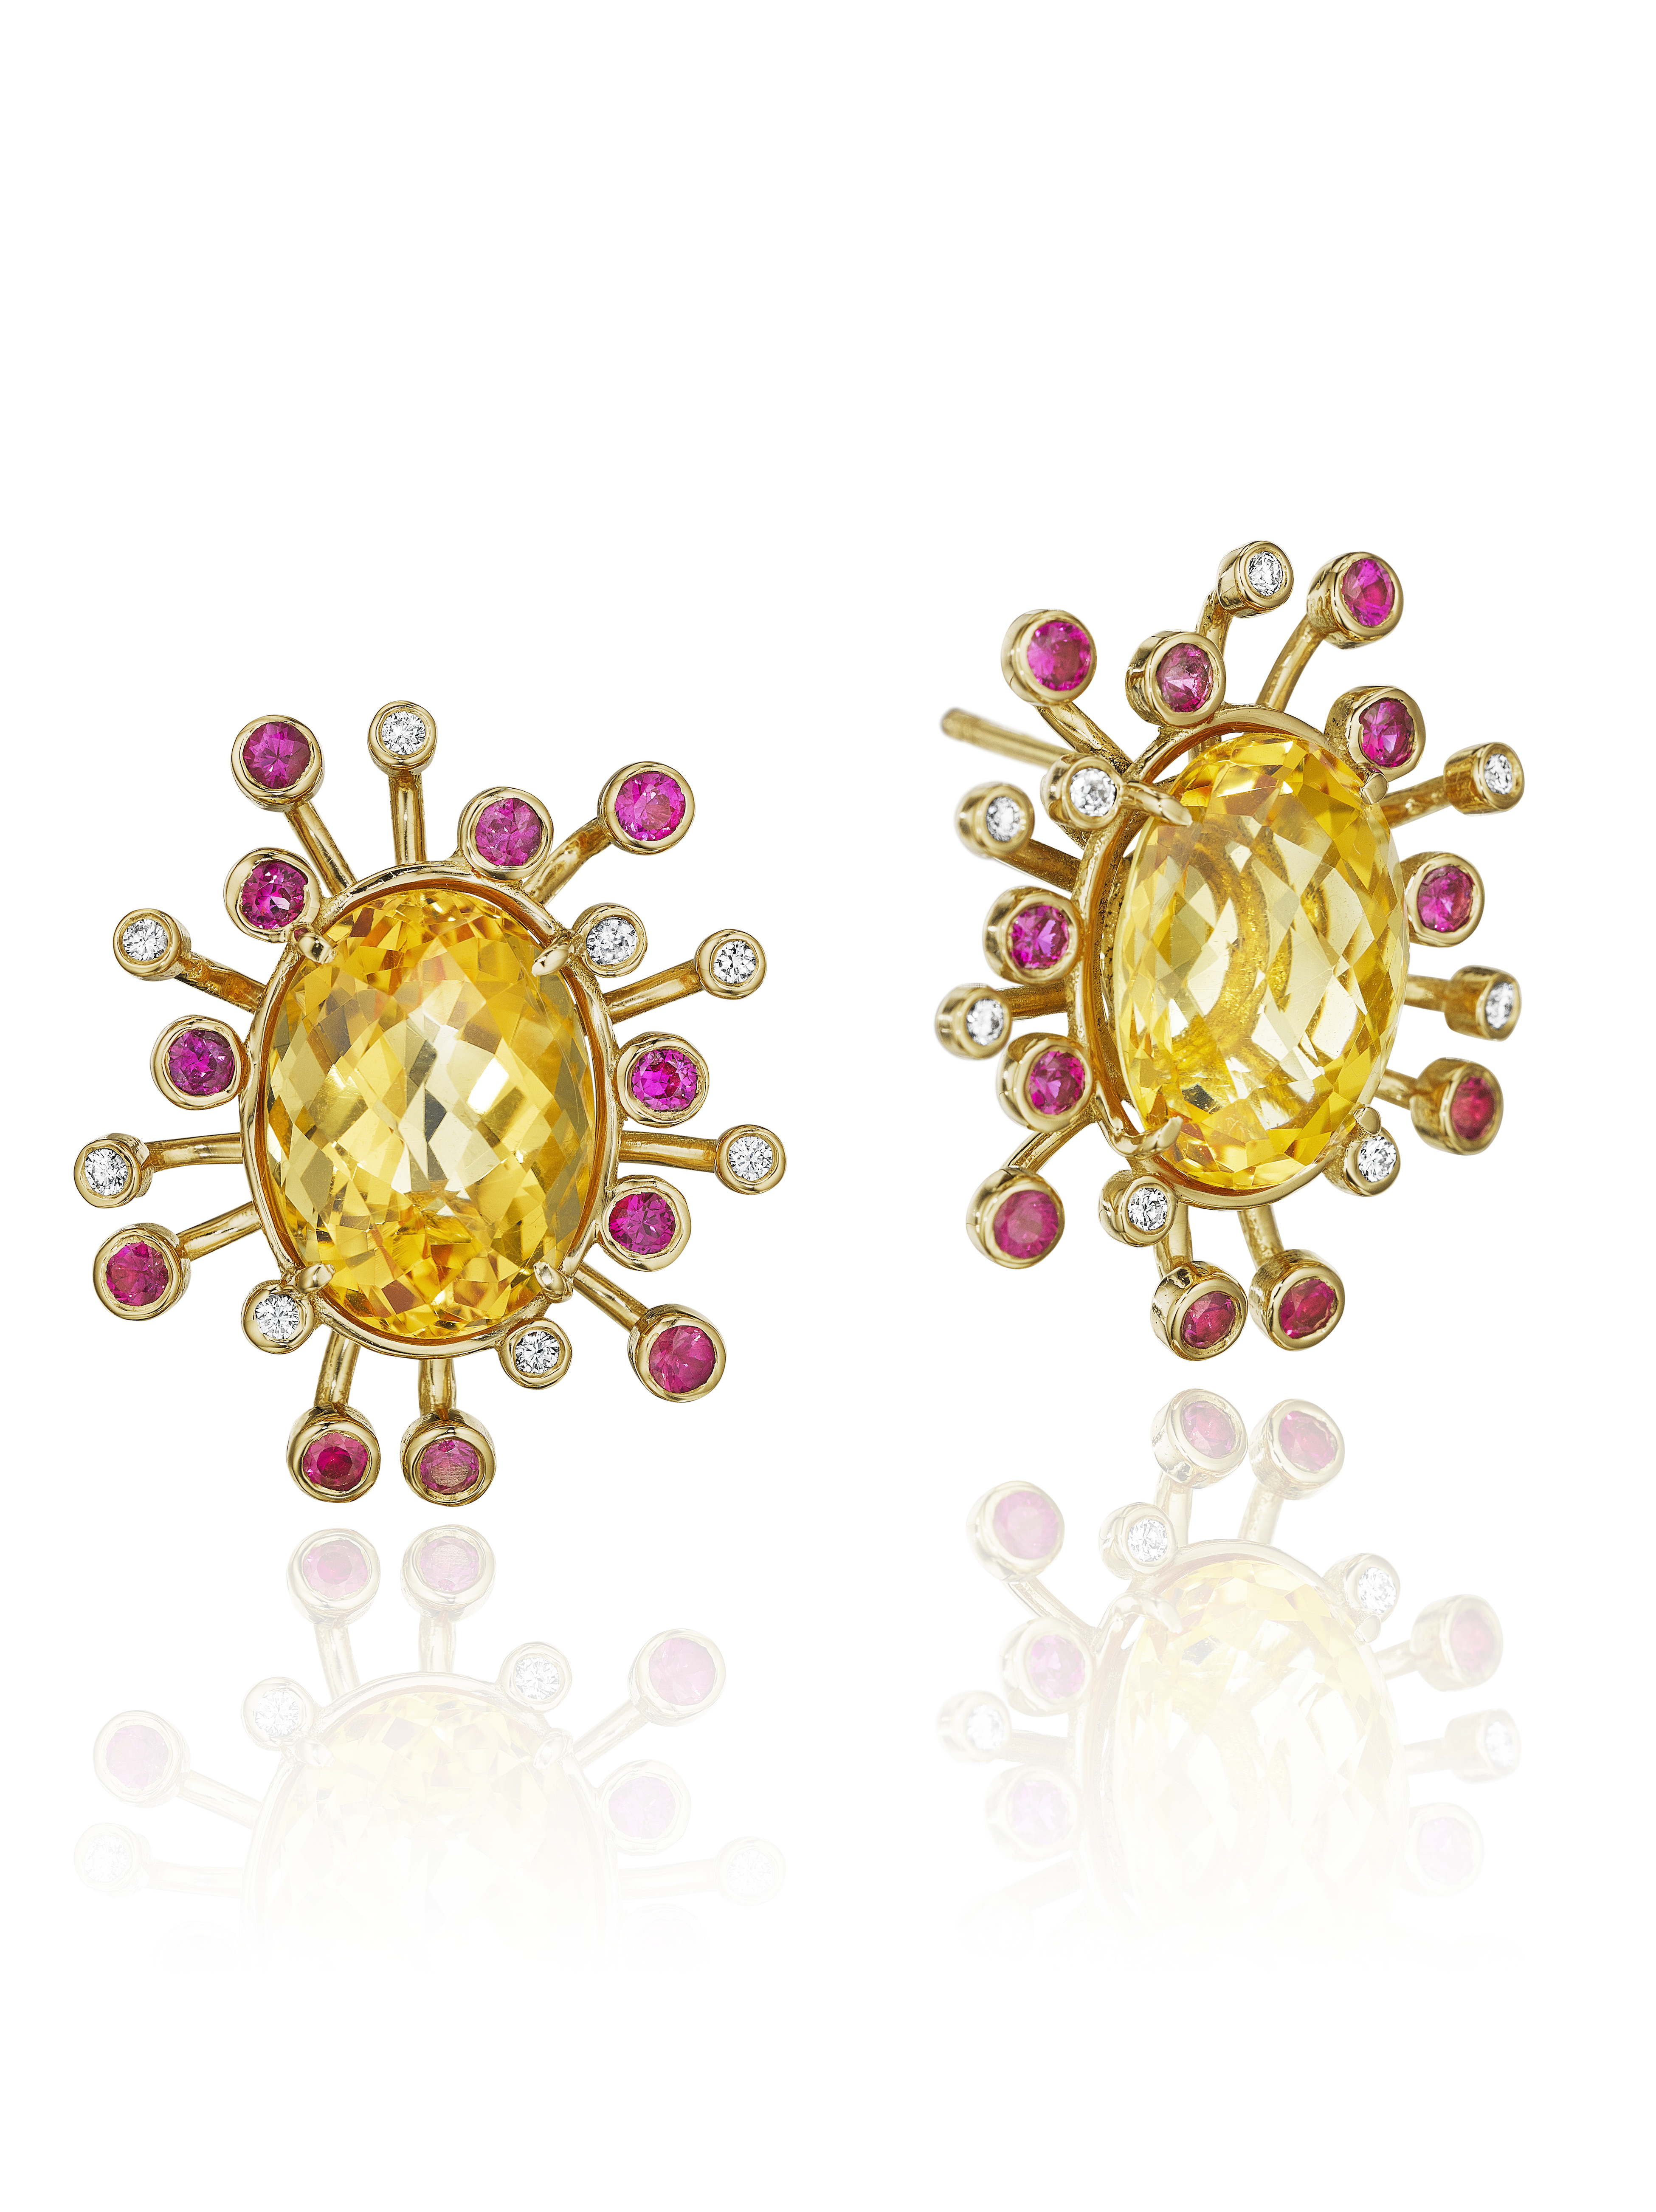 Pure Life Collection earrings